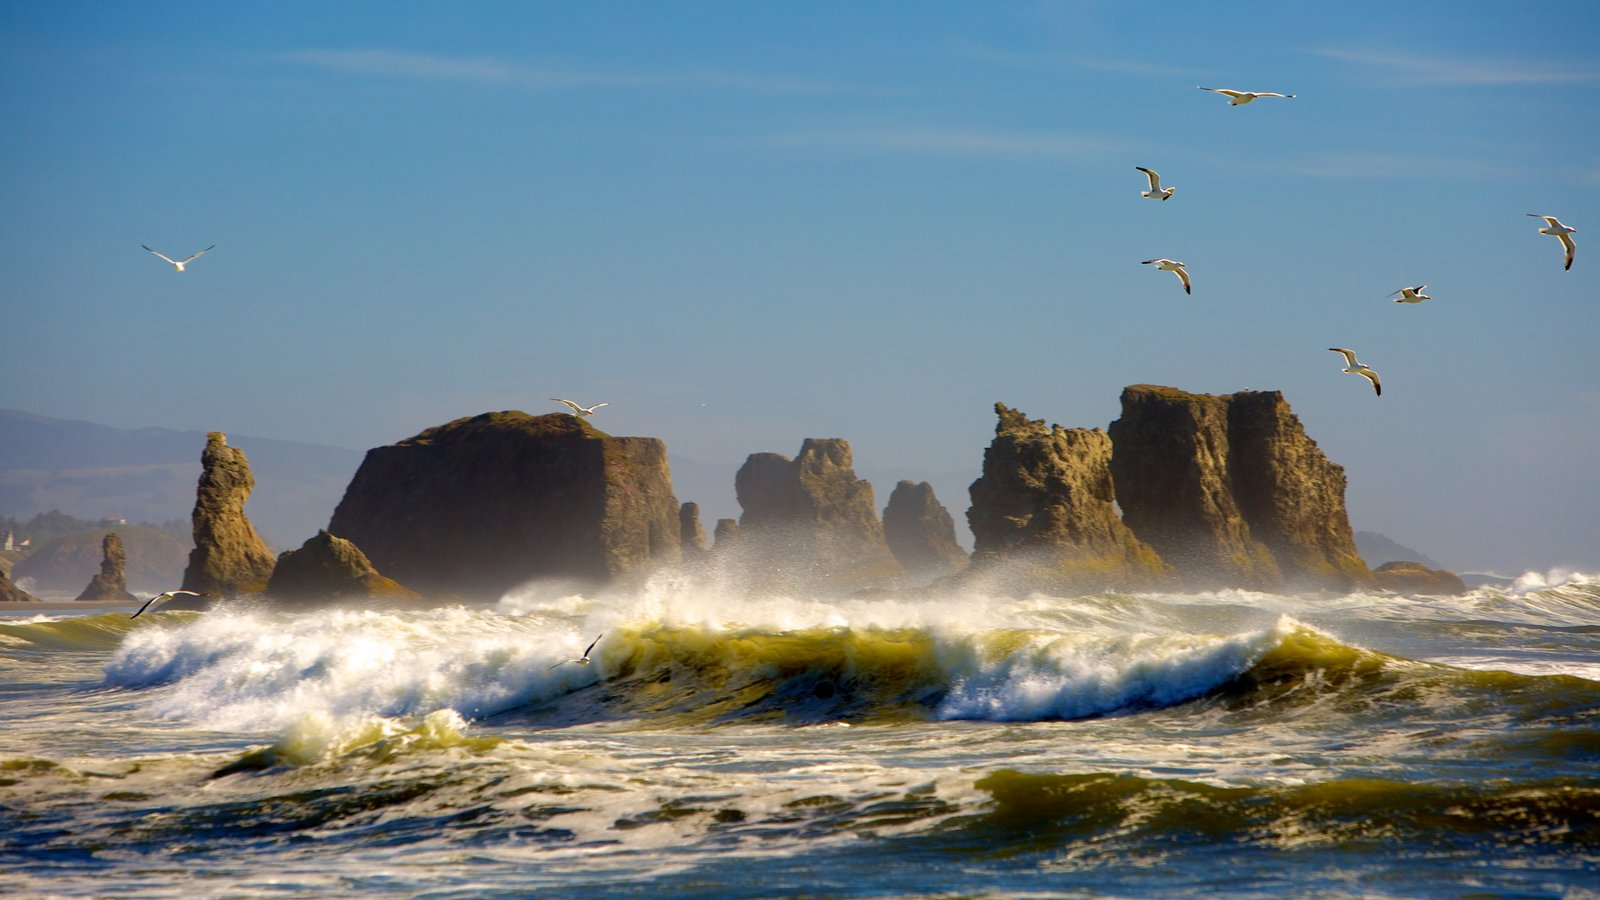 Bandon Beach showing rugged coastline and surf